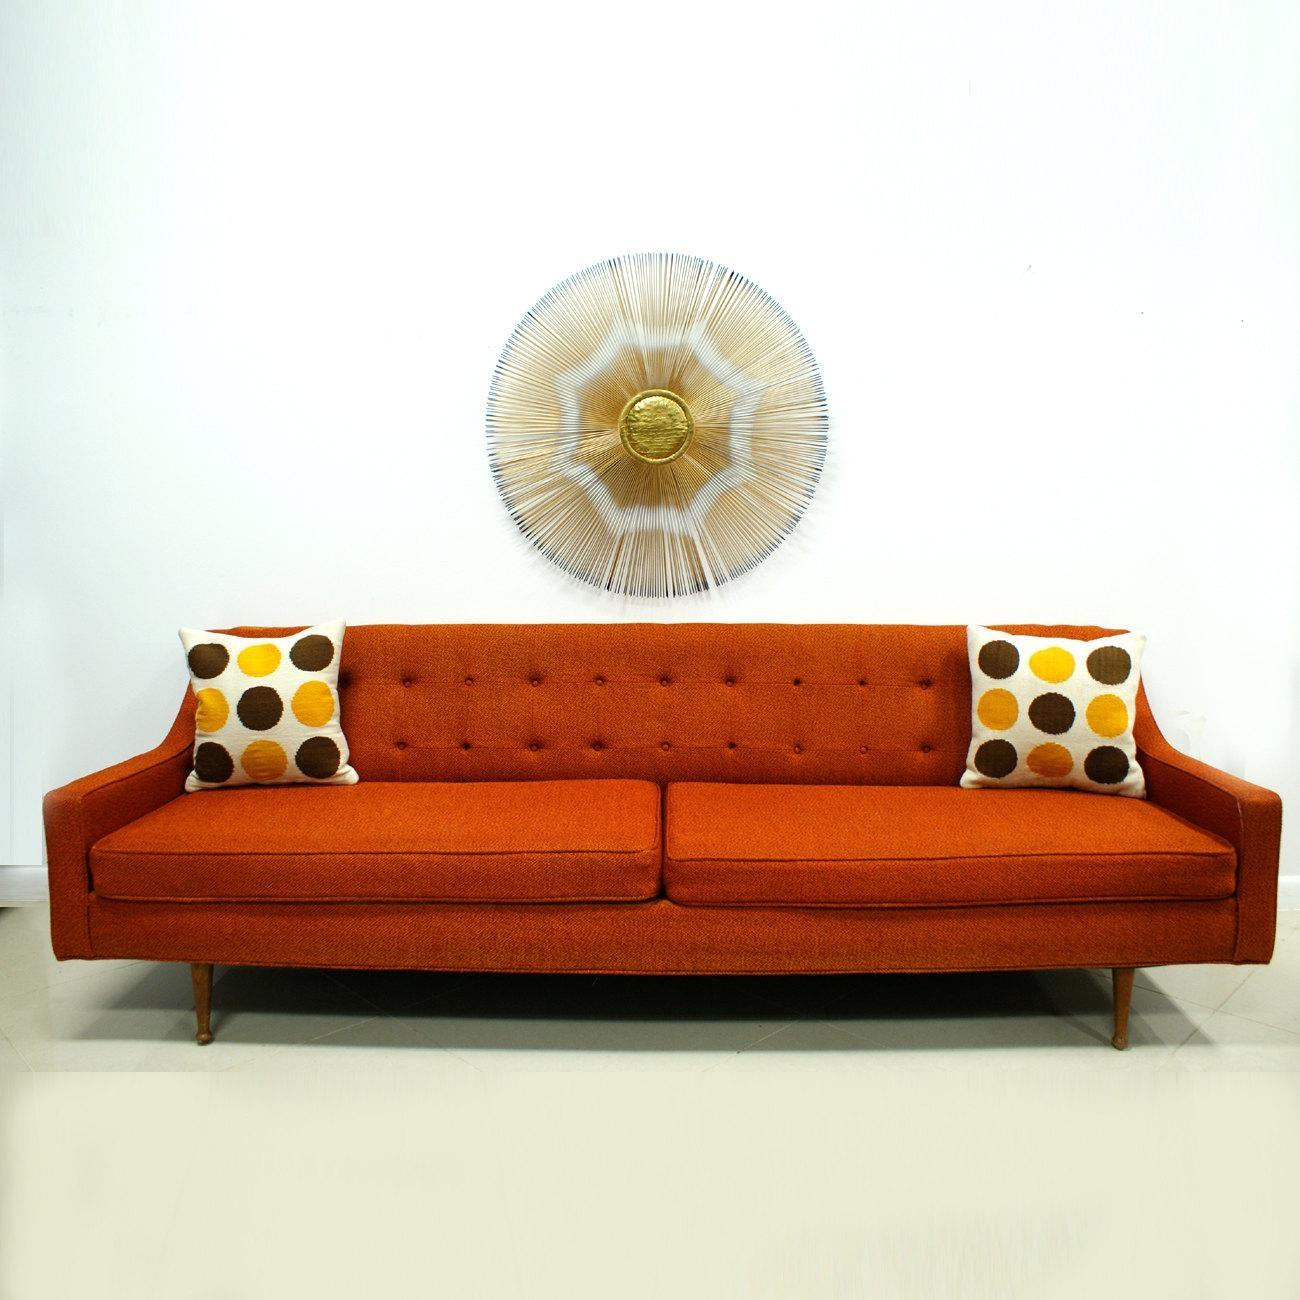 Orange Modern Sofa With Design Ideas 22743 | Kengire Pertaining To Orange Modern Sofas (Image 17 of 20)